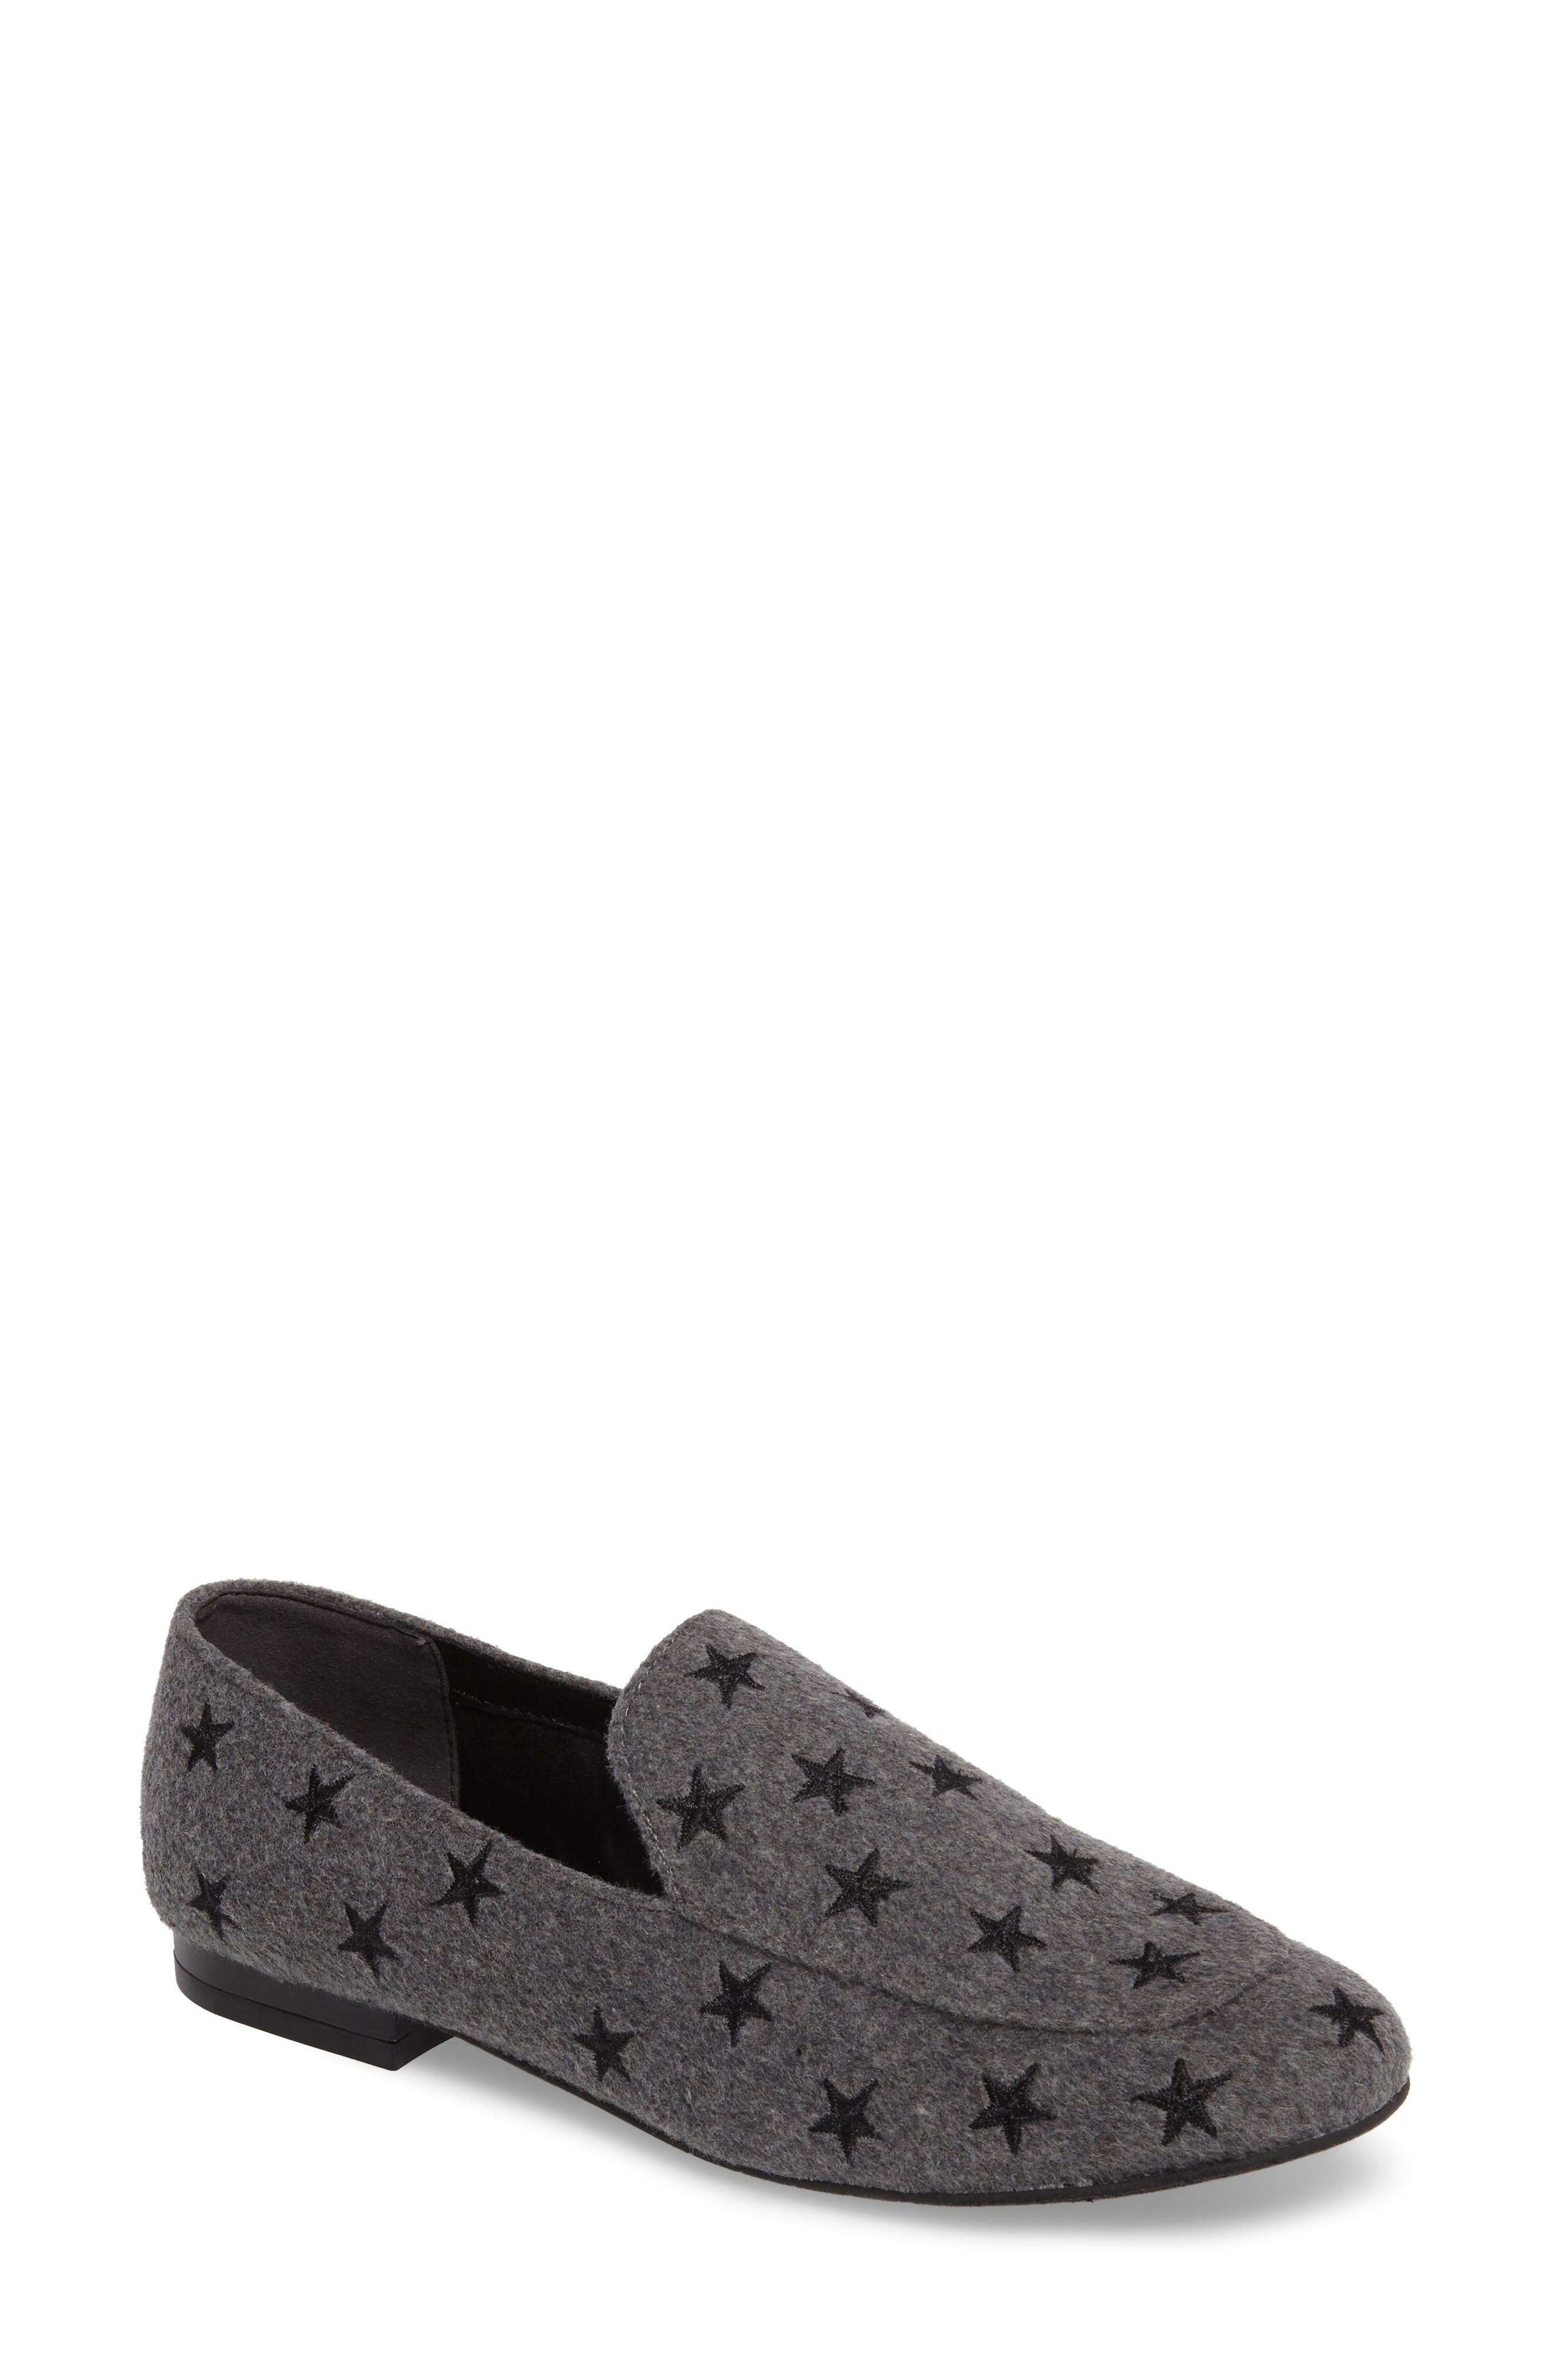 KENNETH COLE NEW YORK Westley 5 Loafer